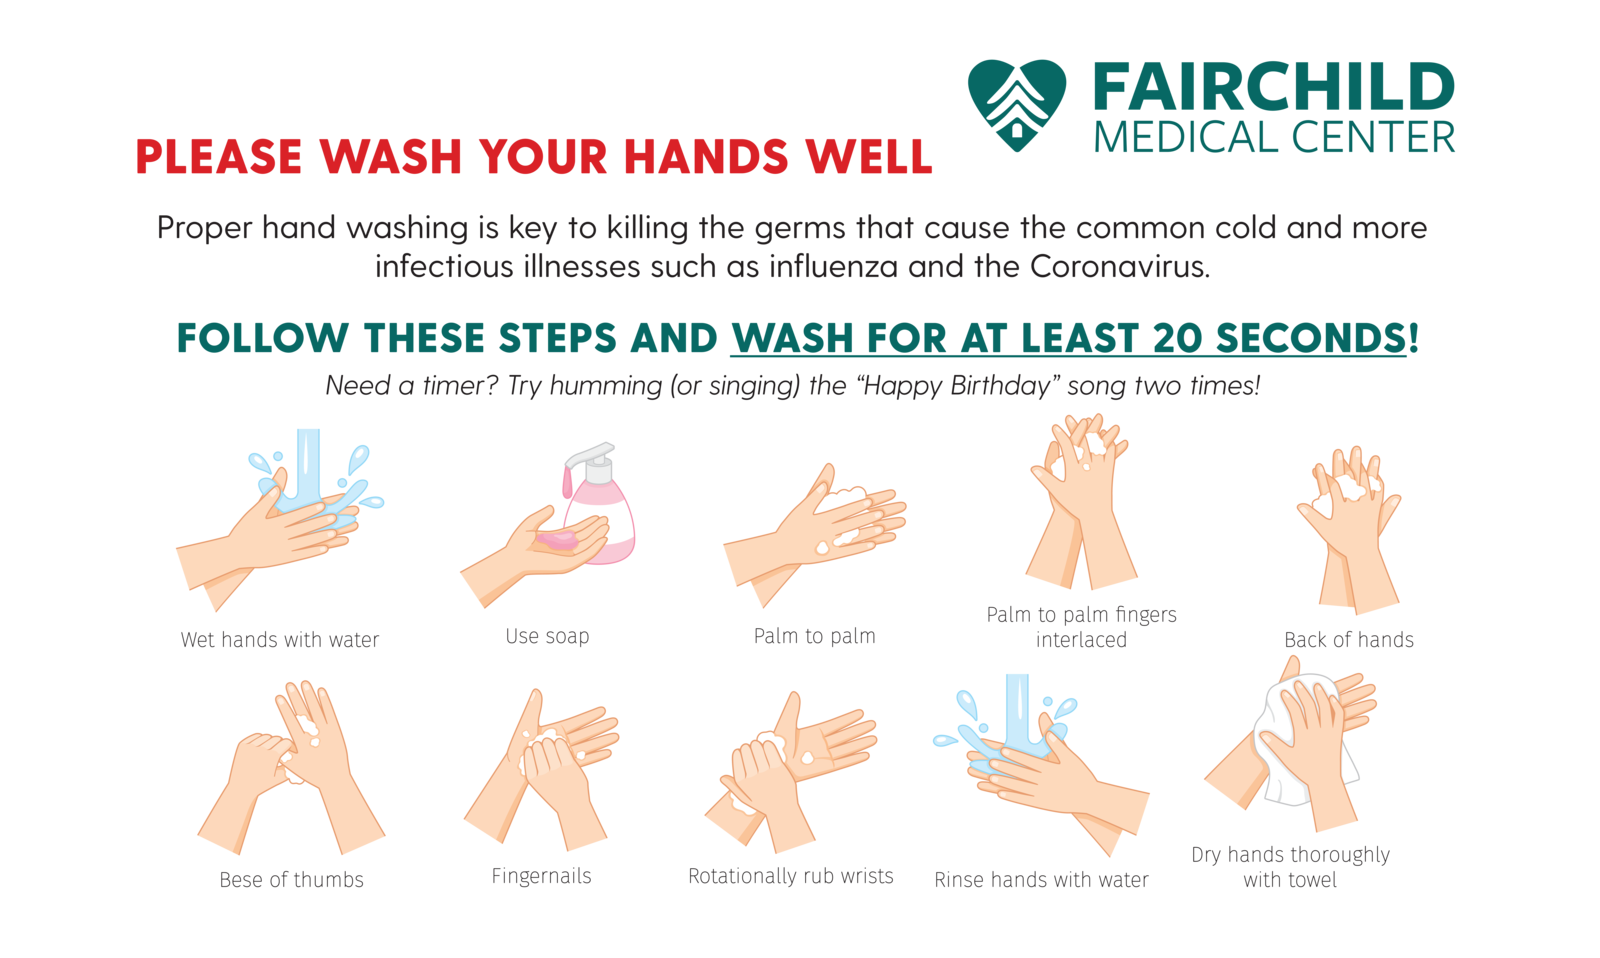 H-D-FMC-Proper-Hand-washing-website-graphic-desktop_fairchildmed.org Desktop Background Image